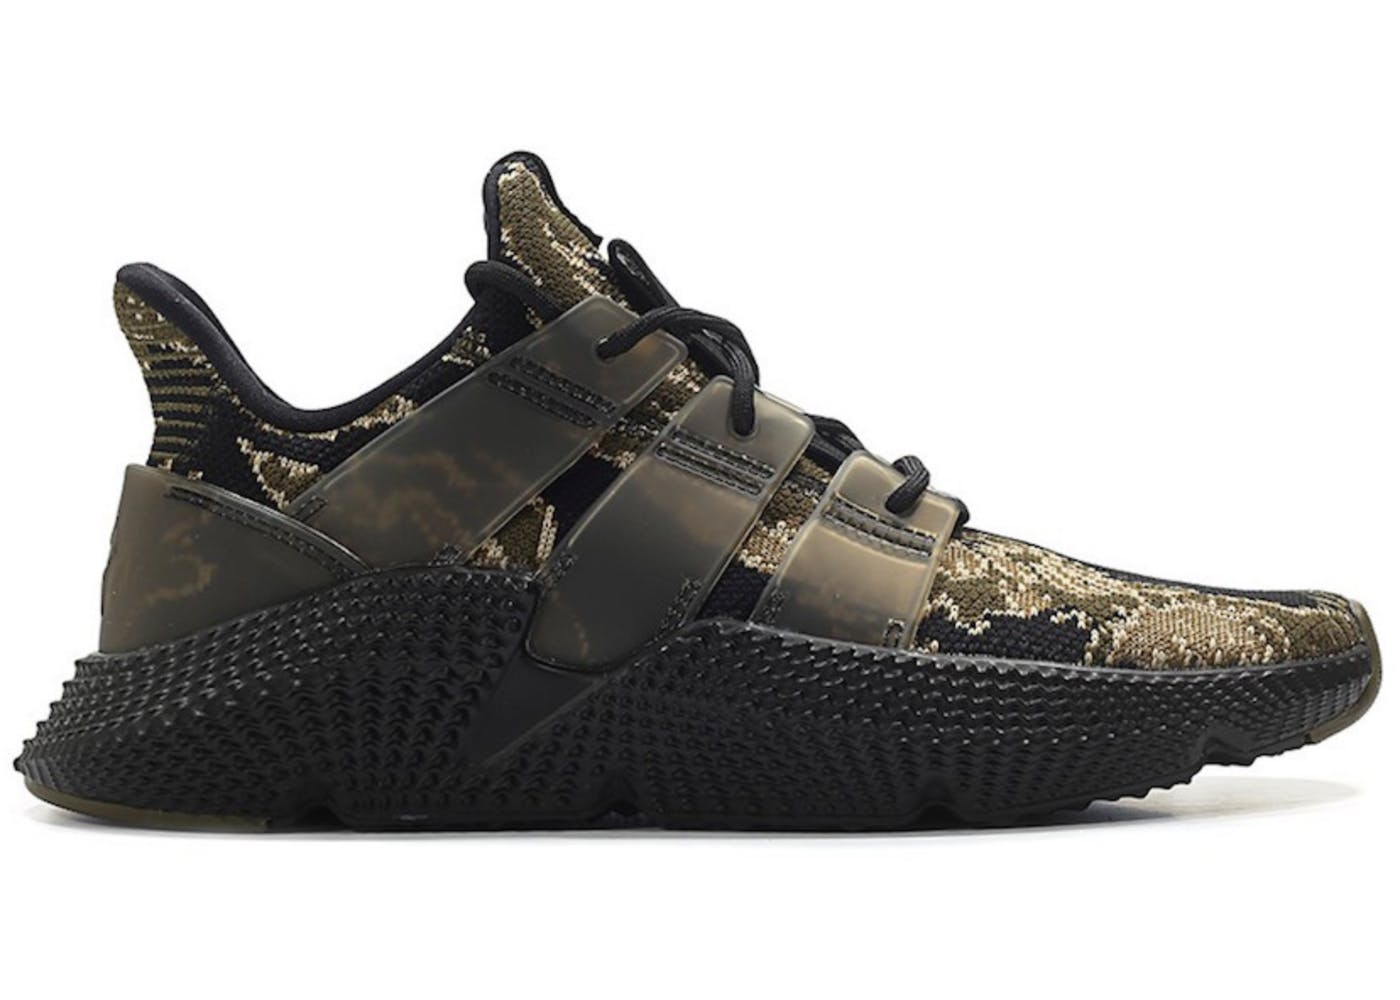 Adidas Prophere Fit